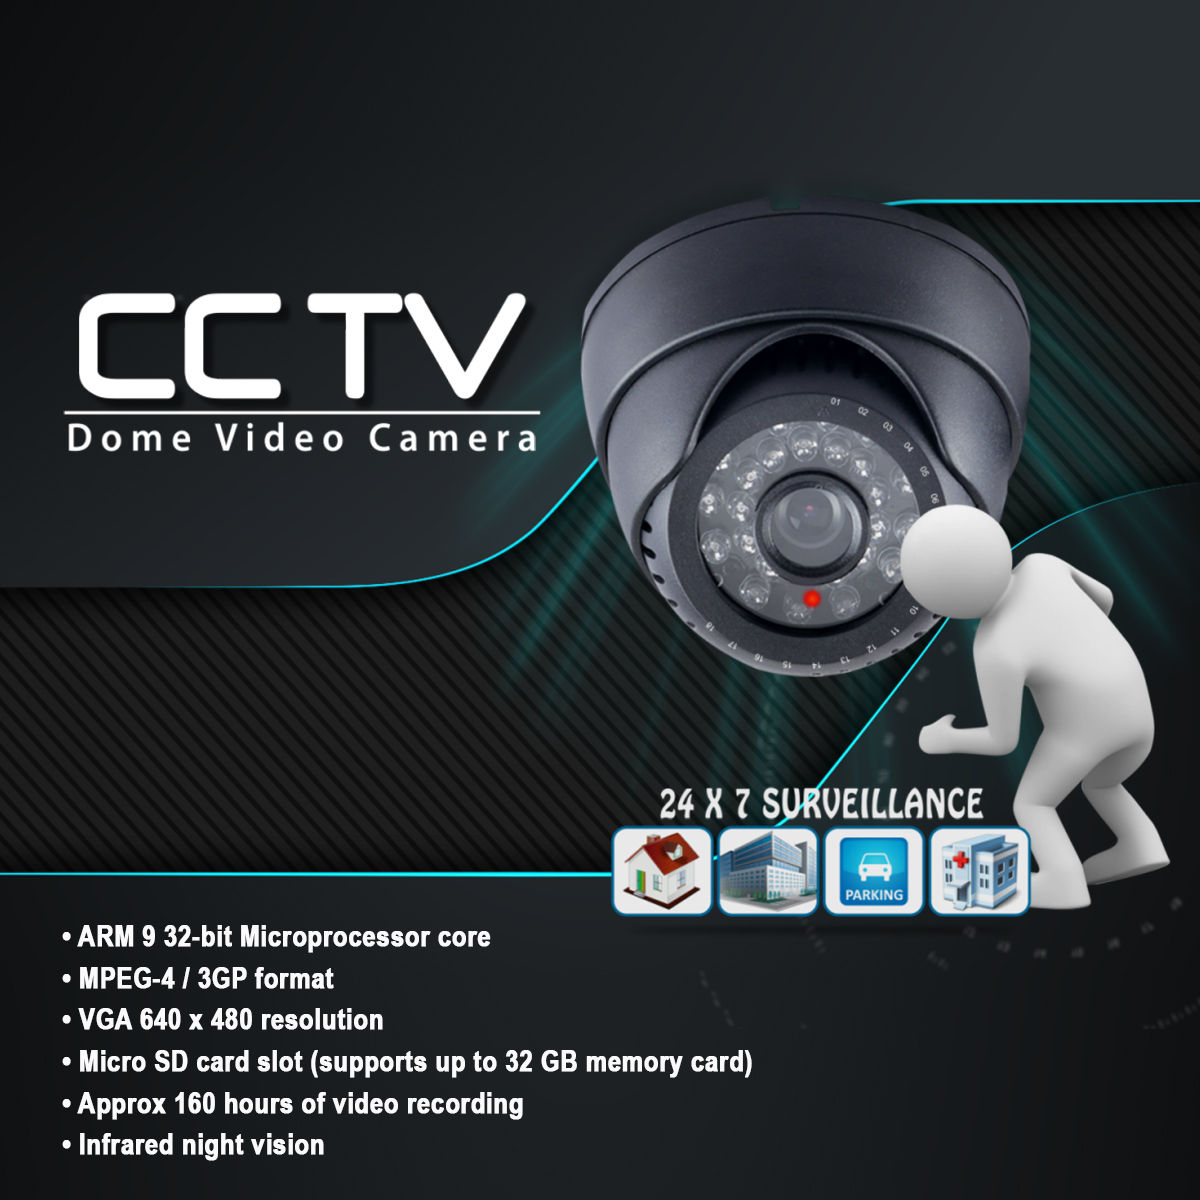 Buy Cctv Dome Video Camera Online At Best Price In India